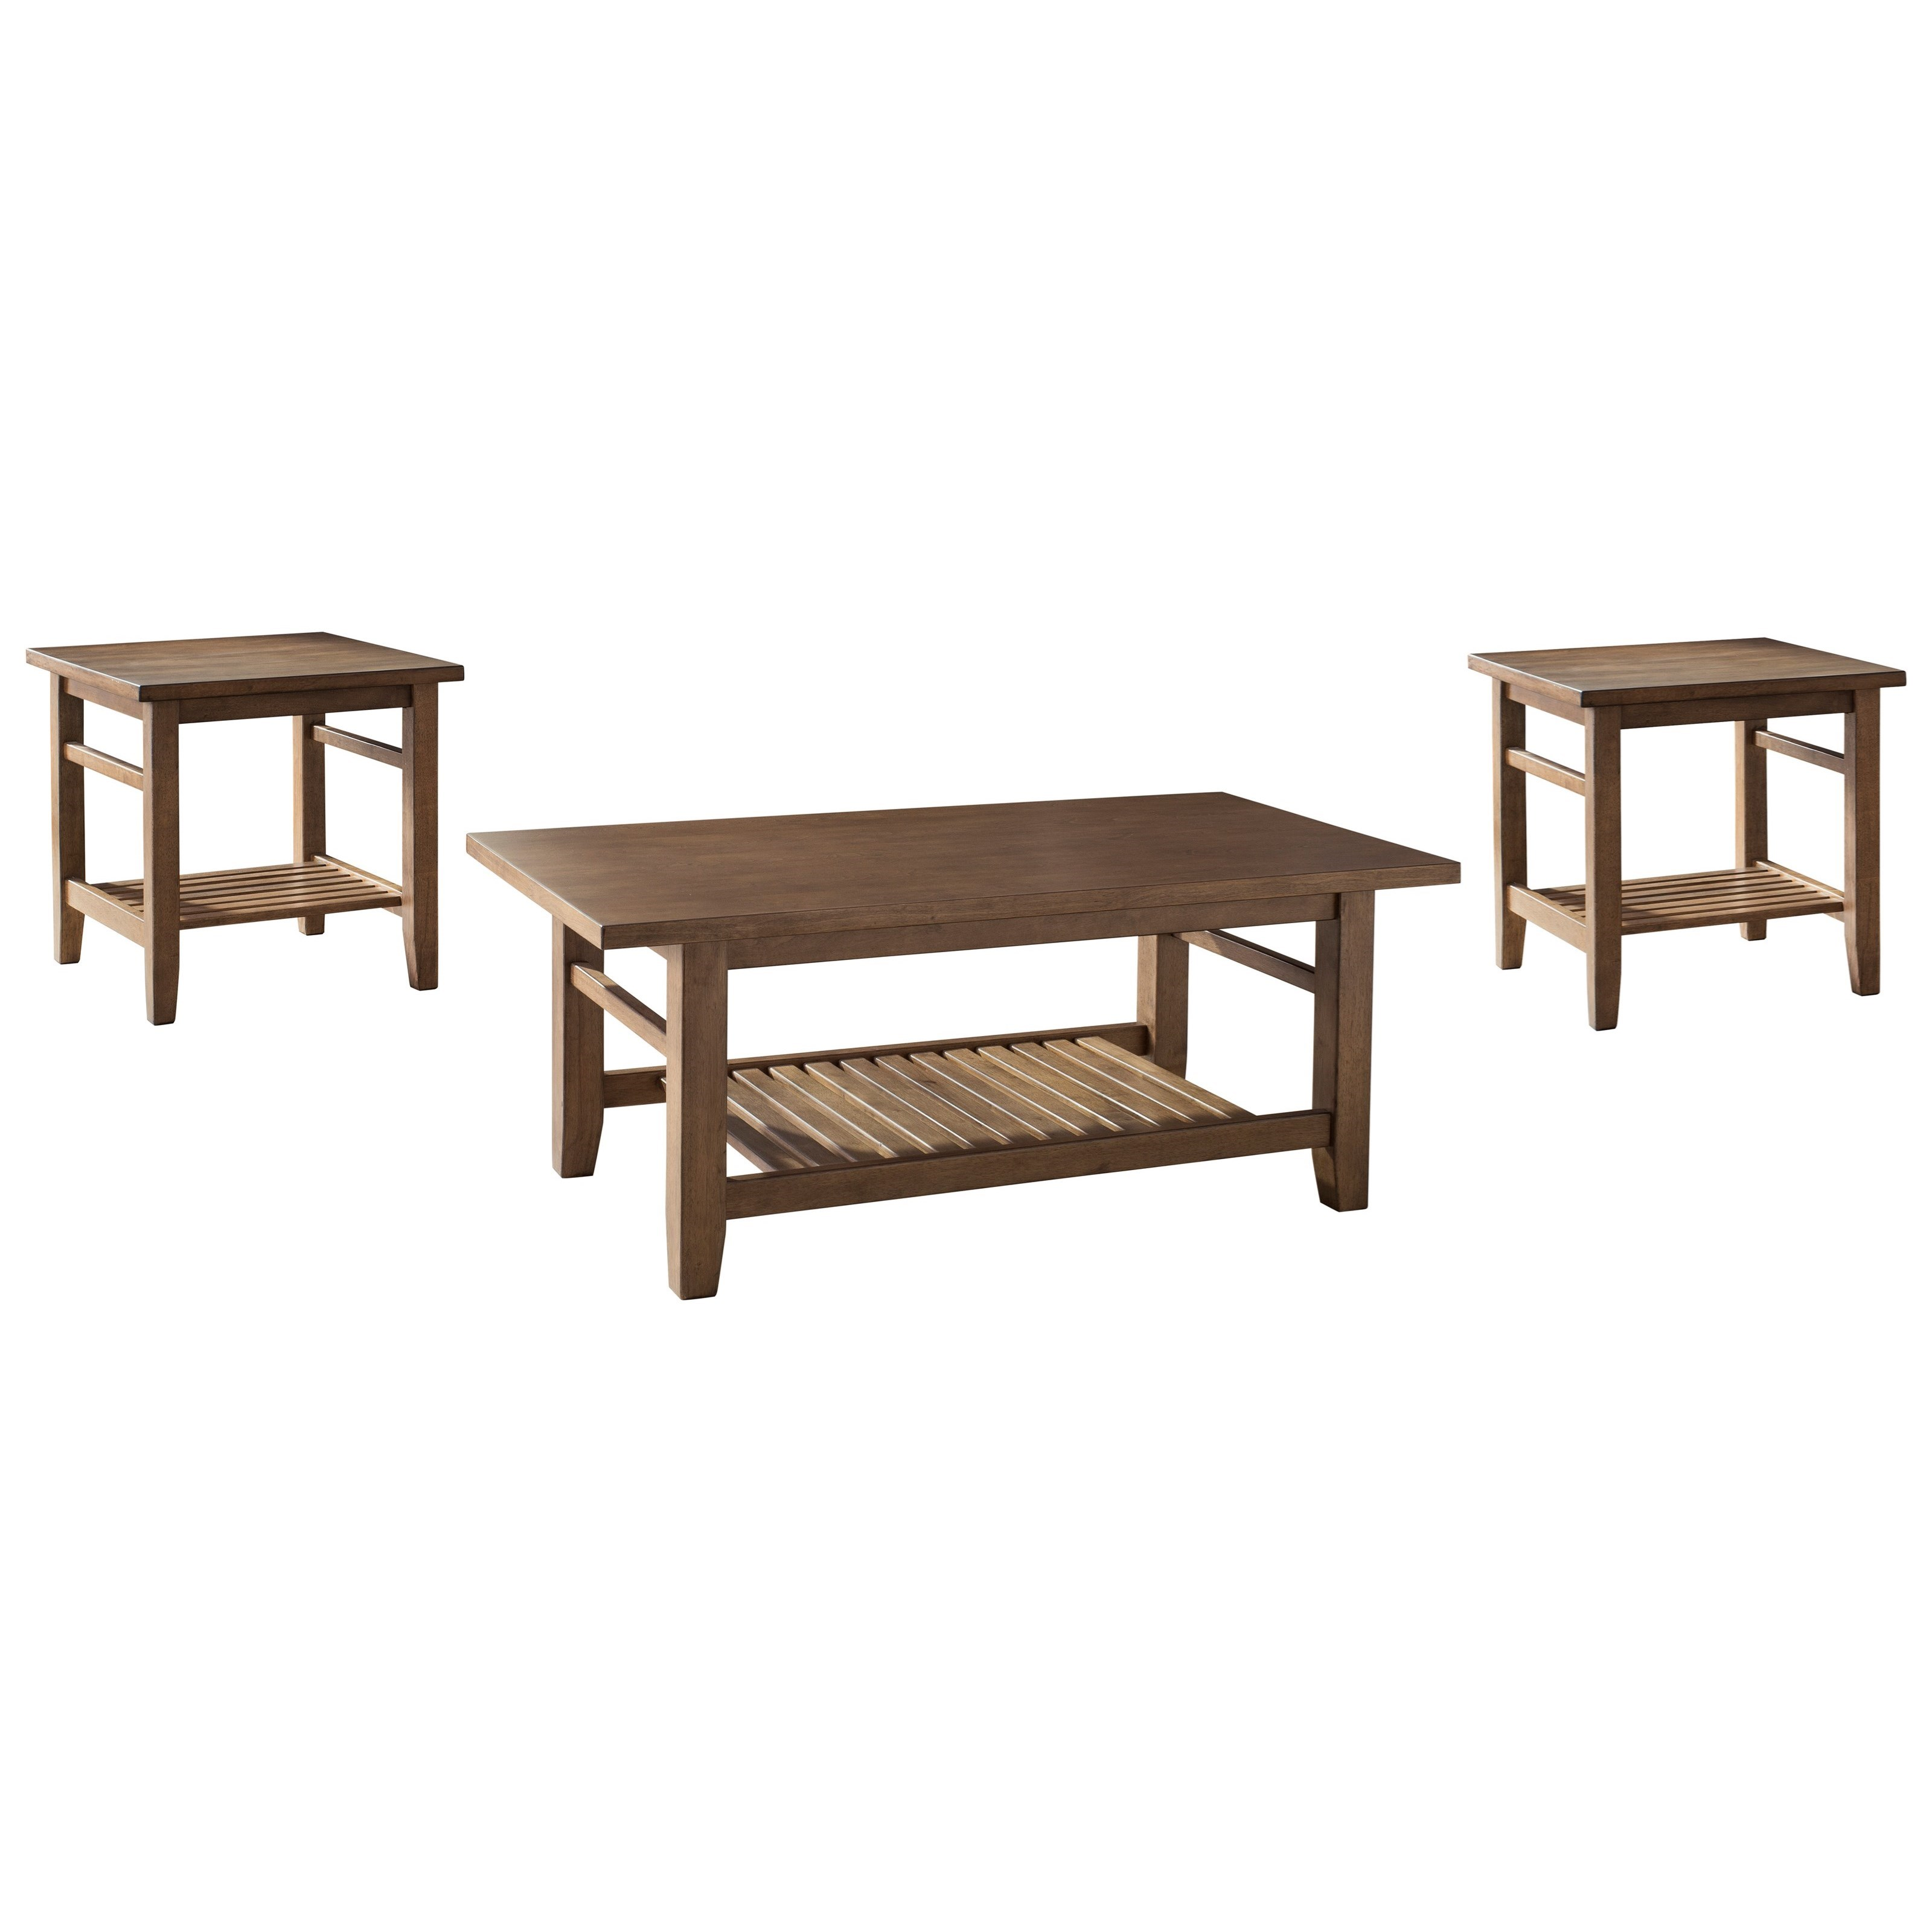 Signature Design by Ashley Zantori Occasional Table Set - Item Number: T125-13